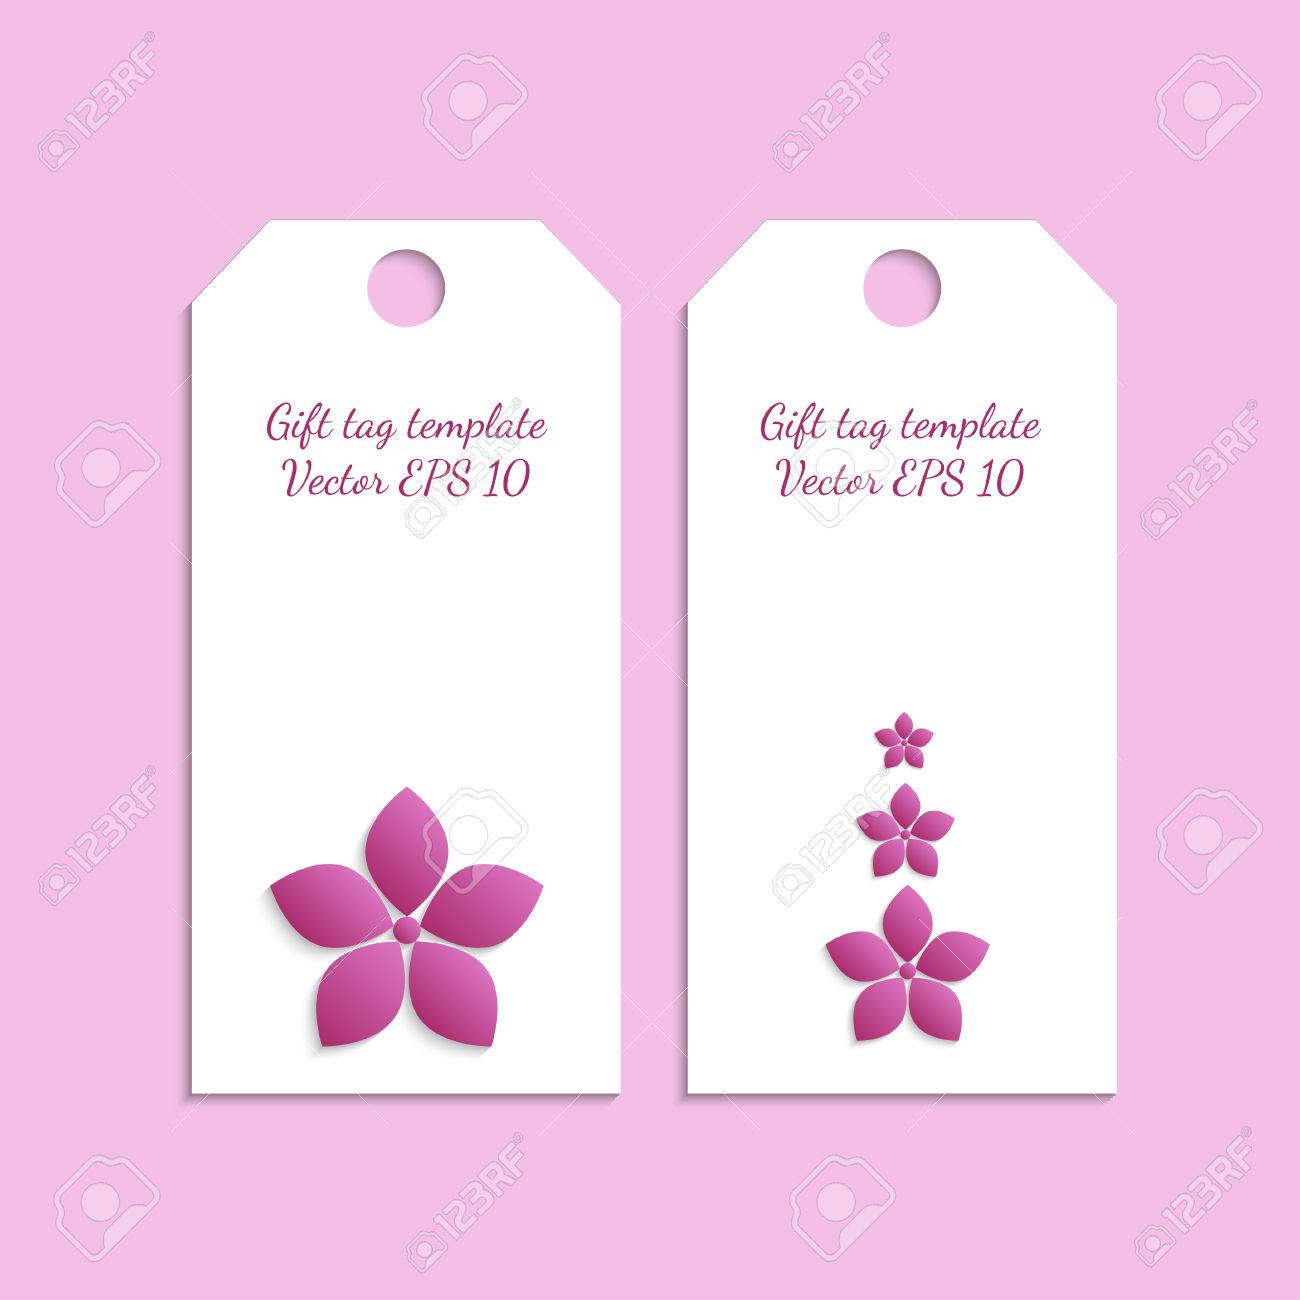 Paper Gift Tag Template With Flower Ornament On Pink Background – Gift Tag Template